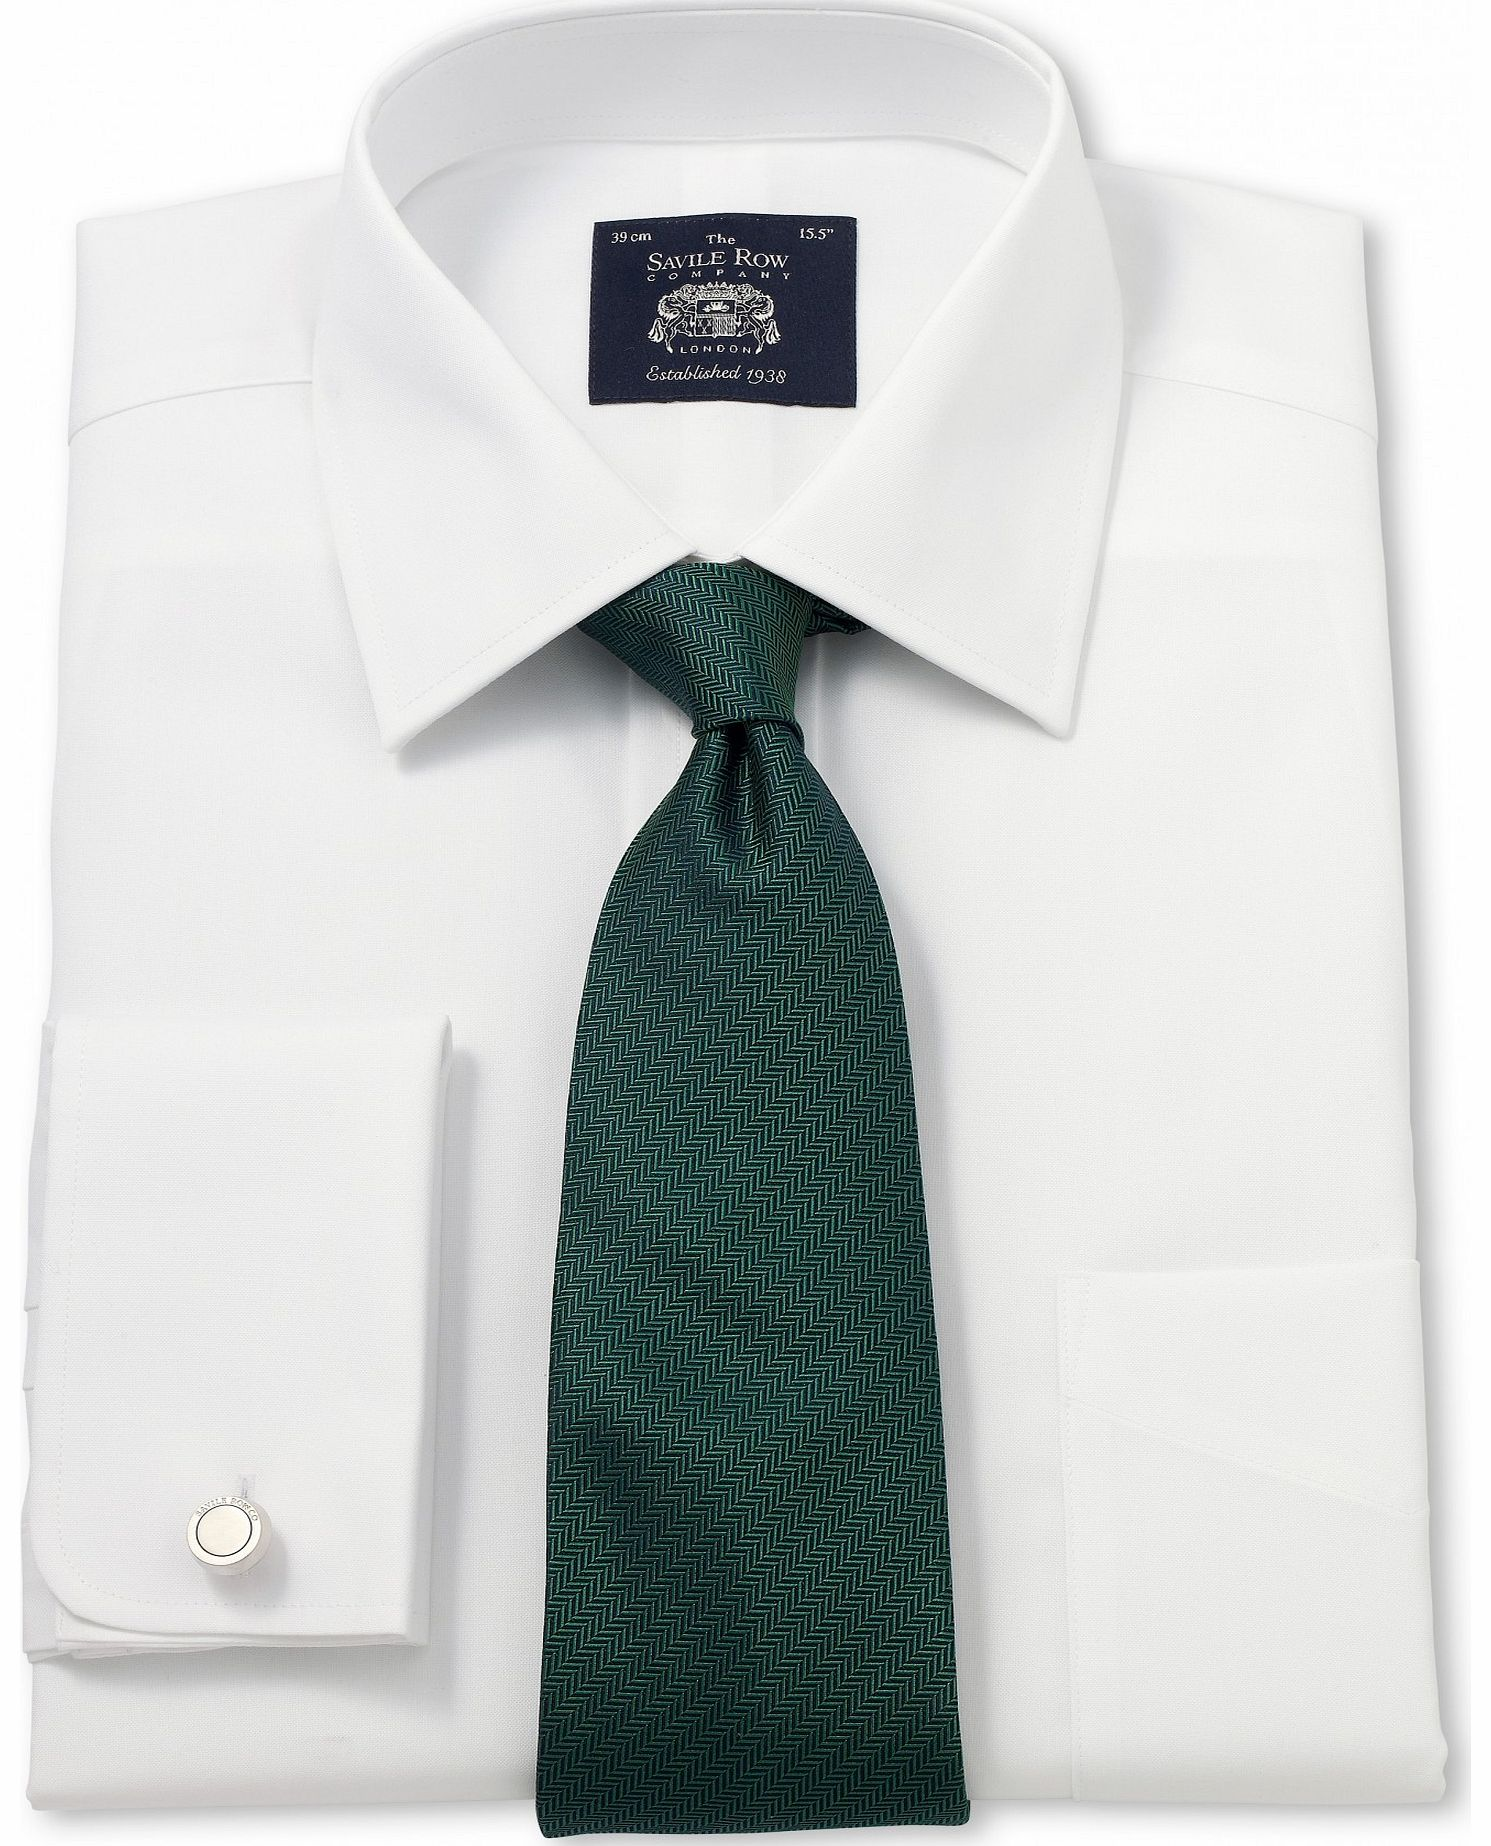 Savile Row Company White Non-Iron Classic Fit Shirt 15 1/2`` Double product image